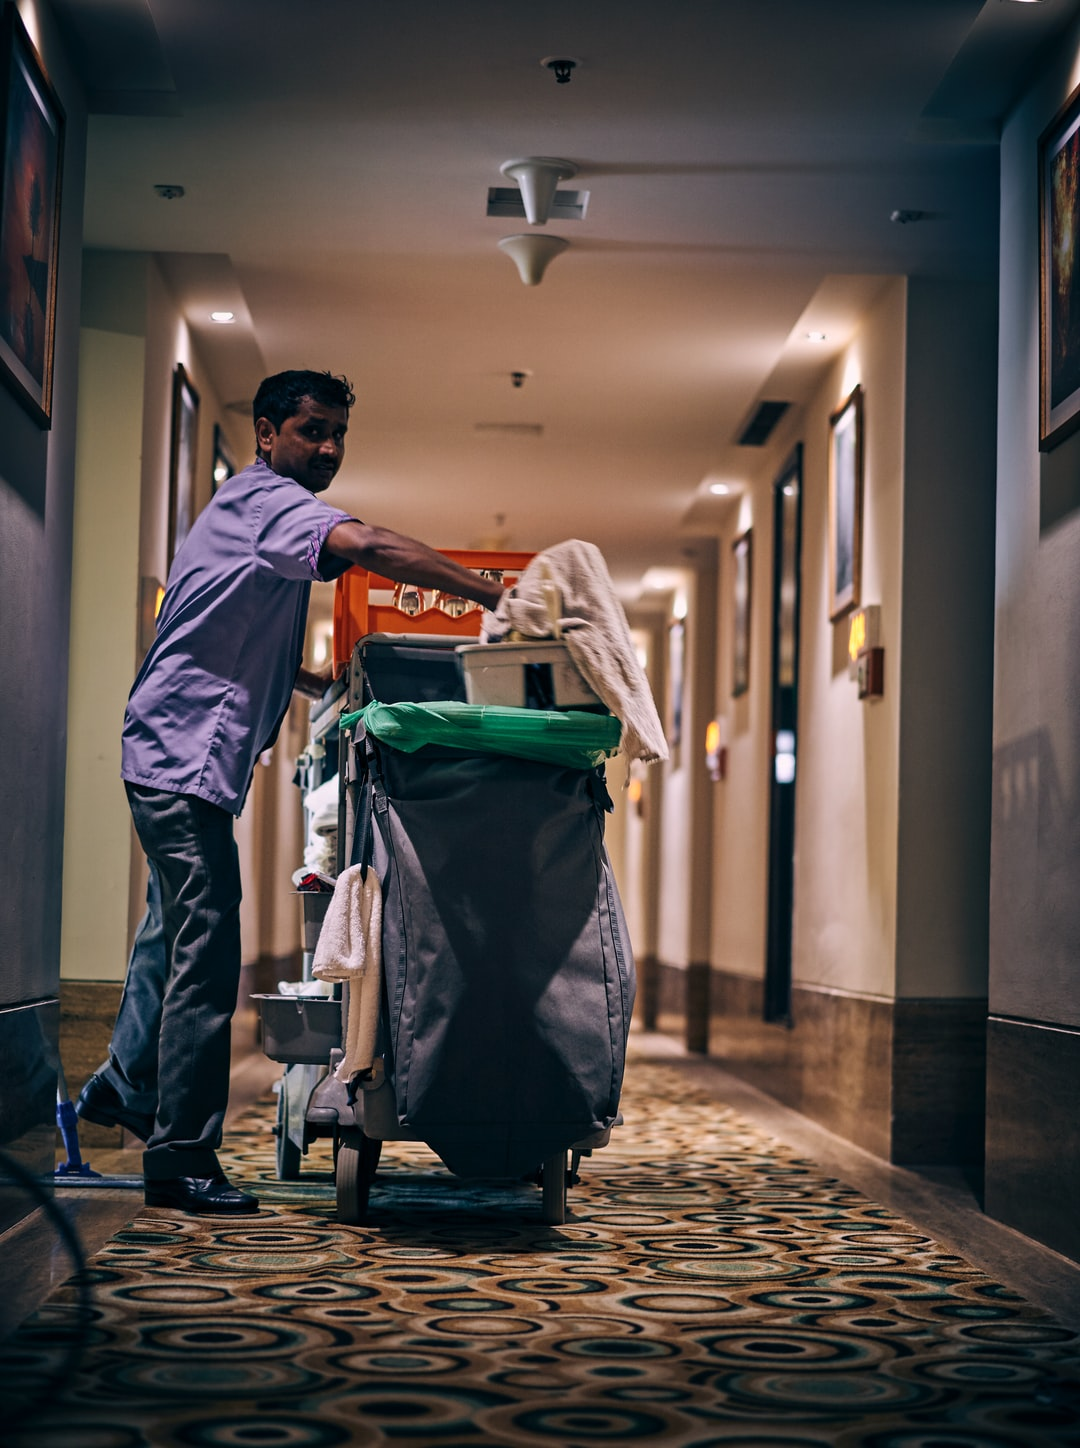 Room cleaning person in a hotel hallway with his equipments